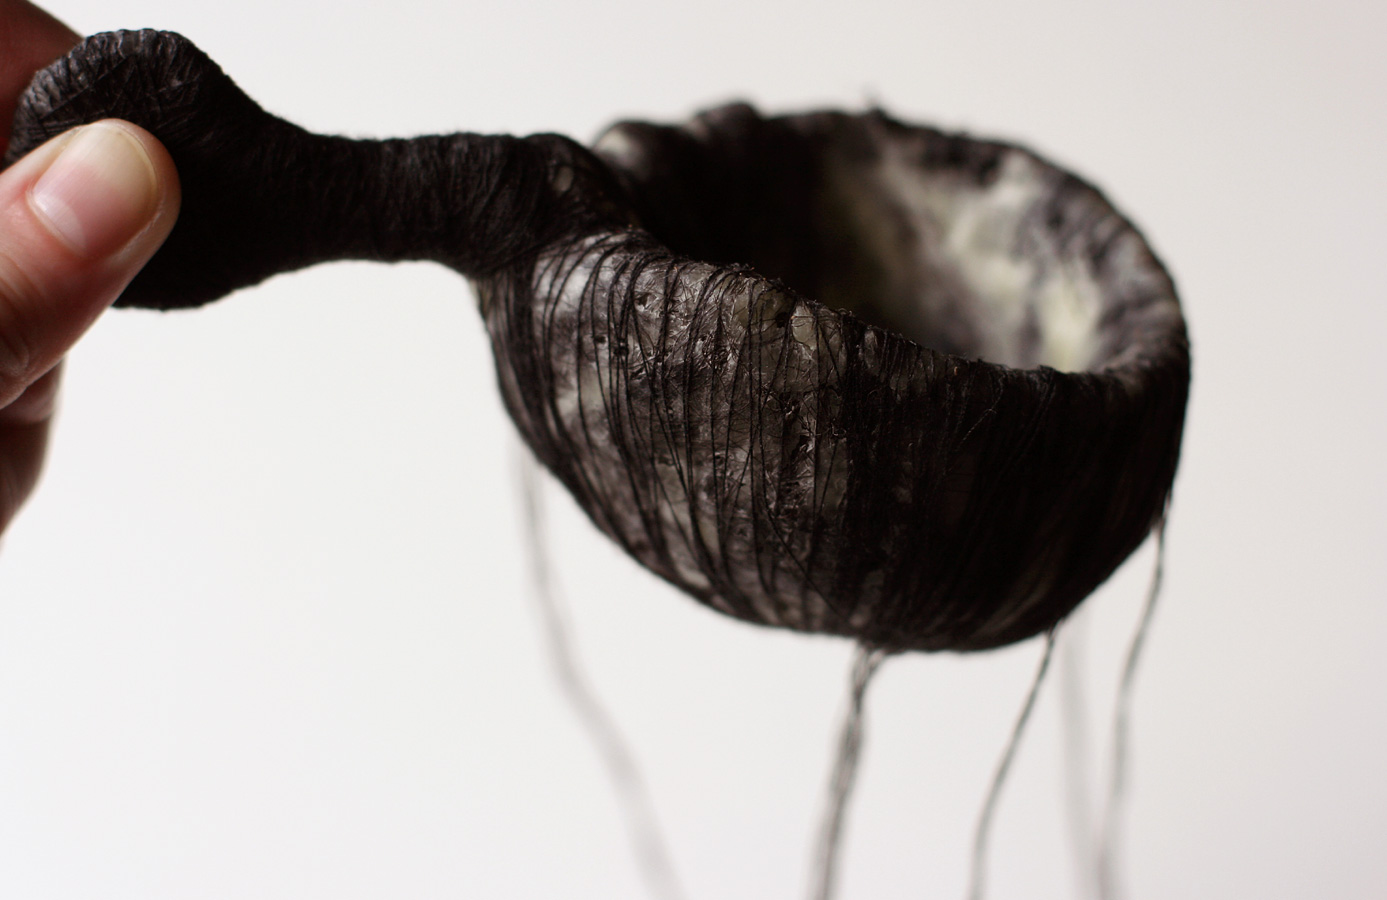 The Black Spoon, 2008. thread, hair, wax, paper & wire.